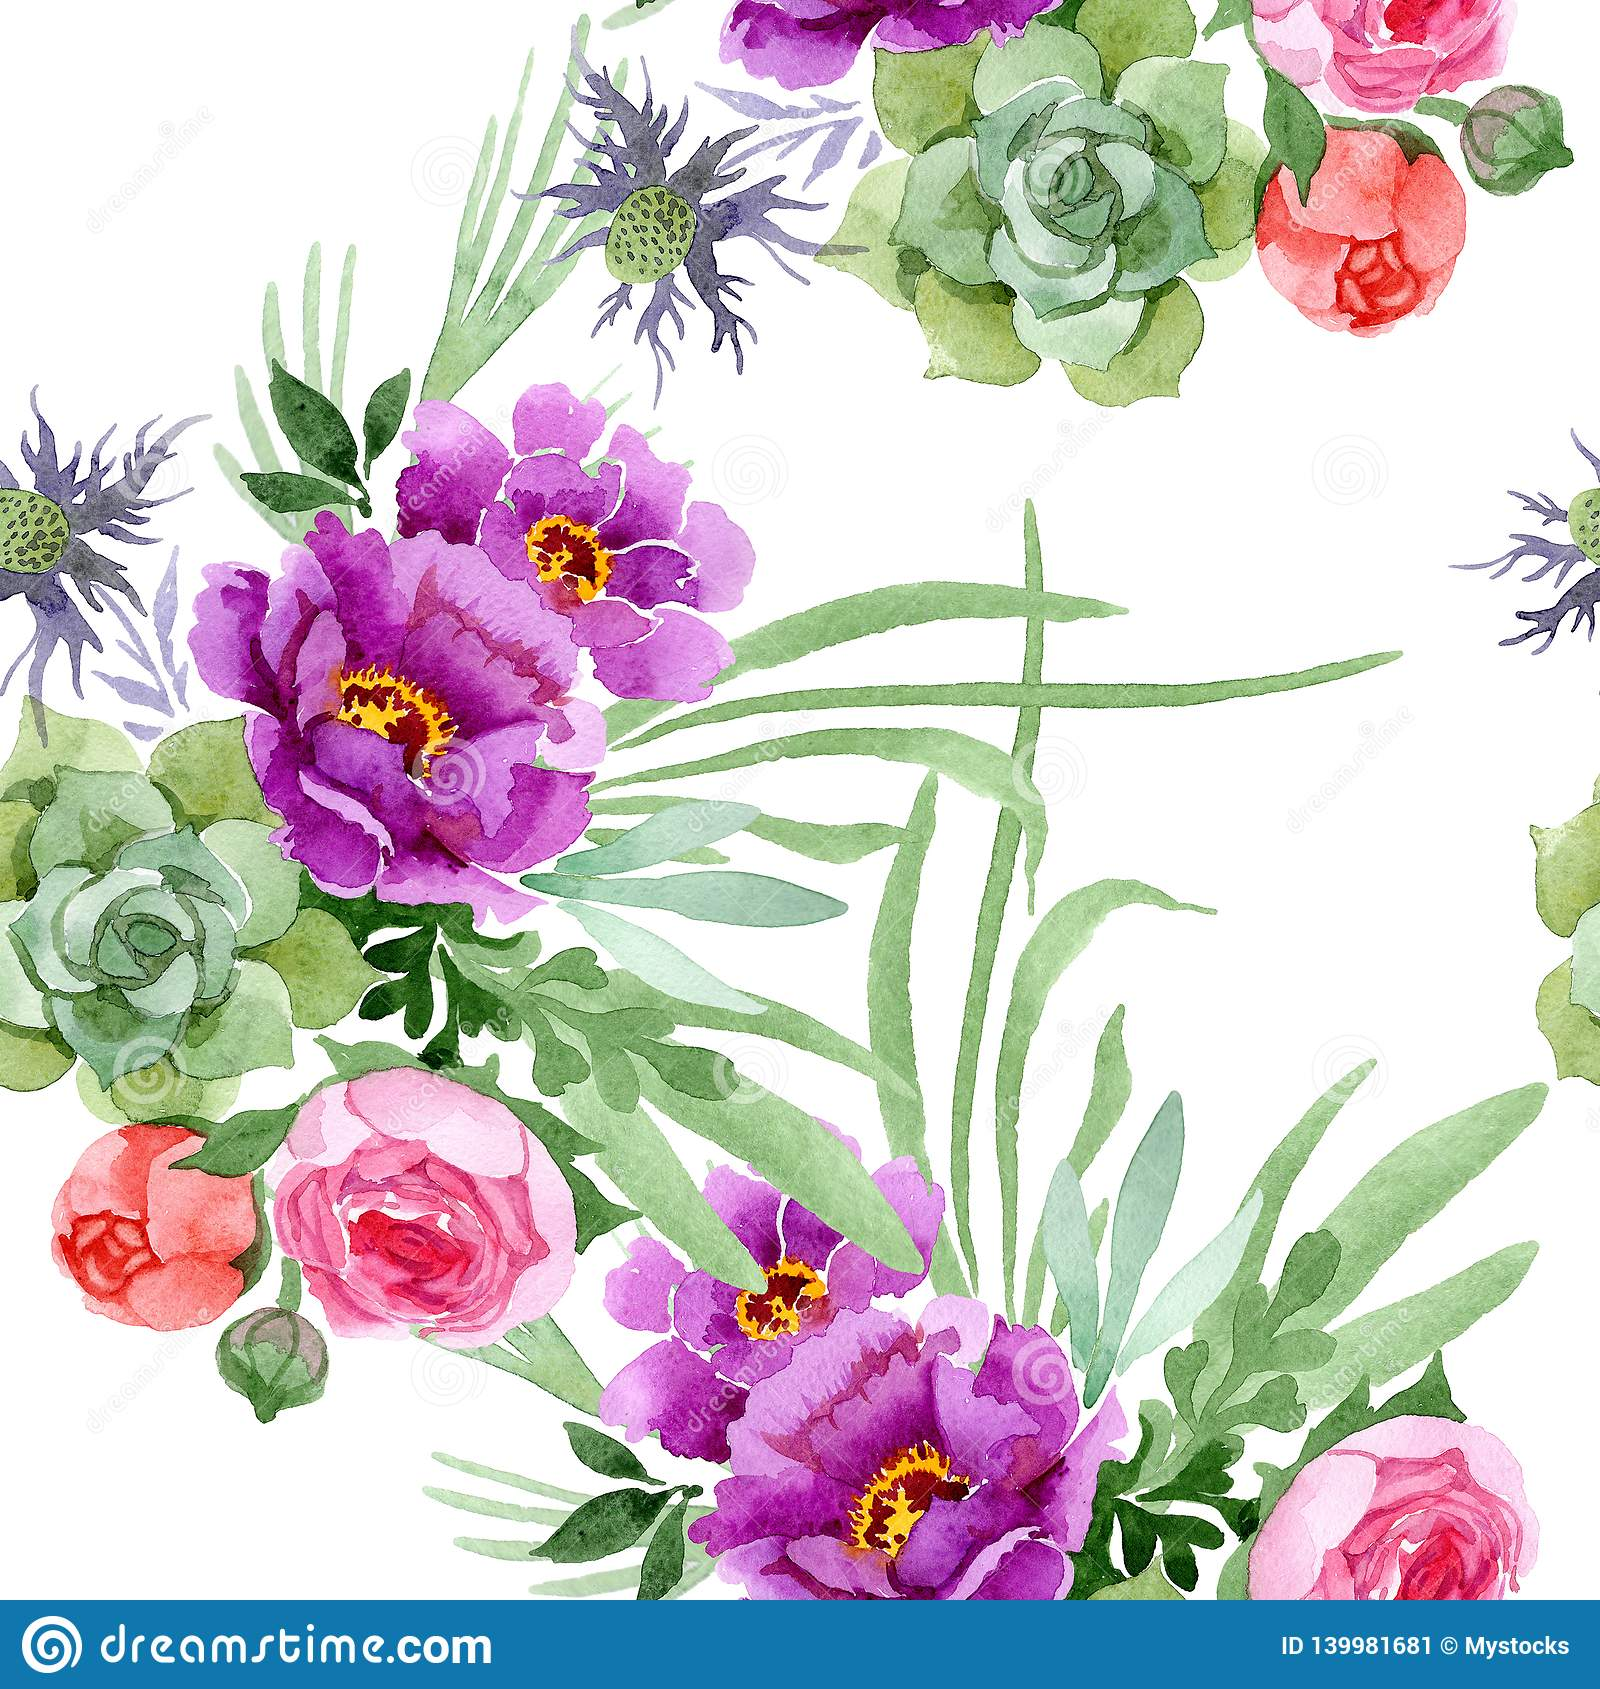 Peony And Succulent Bouquet Floral Botanical Flower Watercolor Illustration Set Seamless Background Pattern Stock Illustration Illustration Of Botanical Drawing 139981681